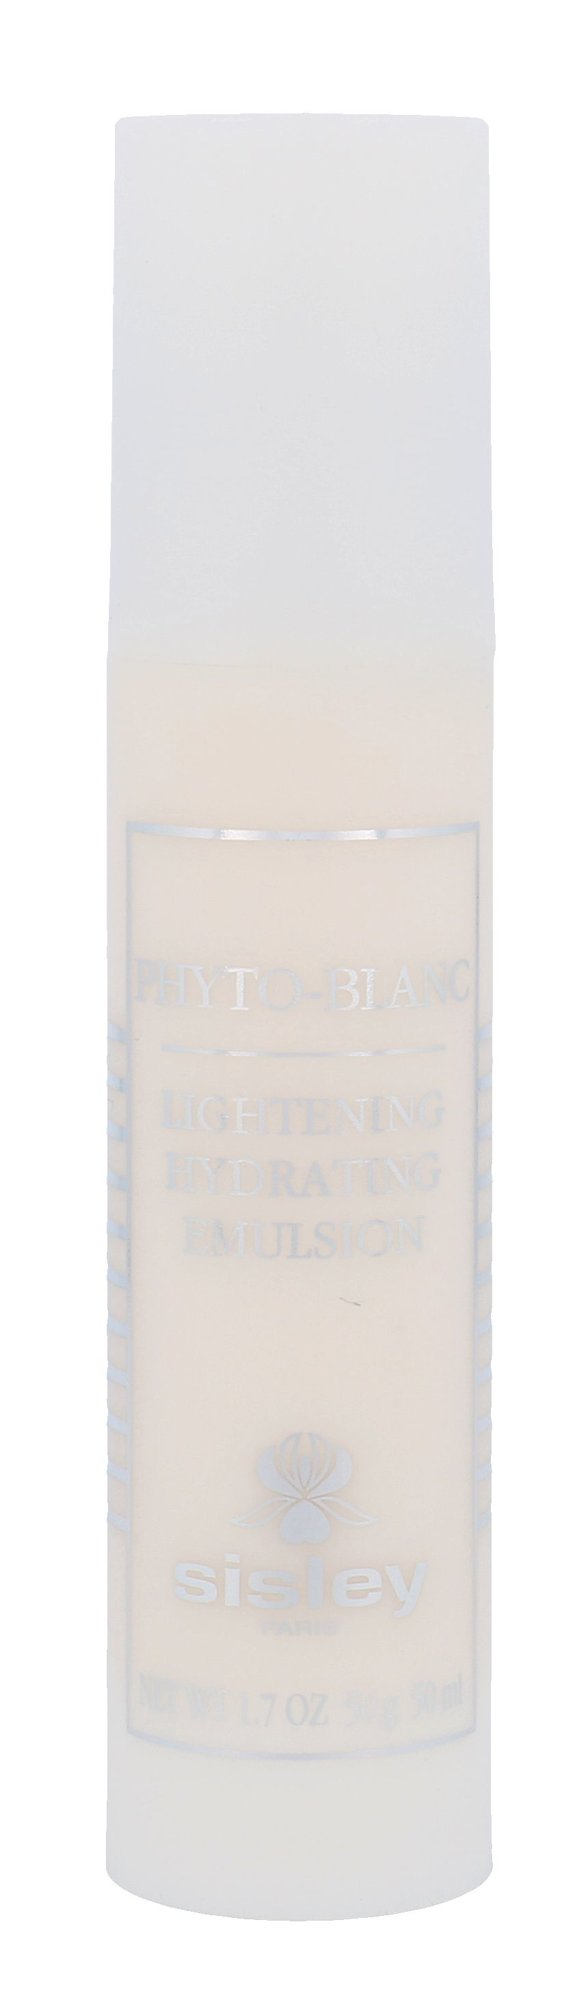 Sisley Phyto-Blanc Cosmetic 50ml